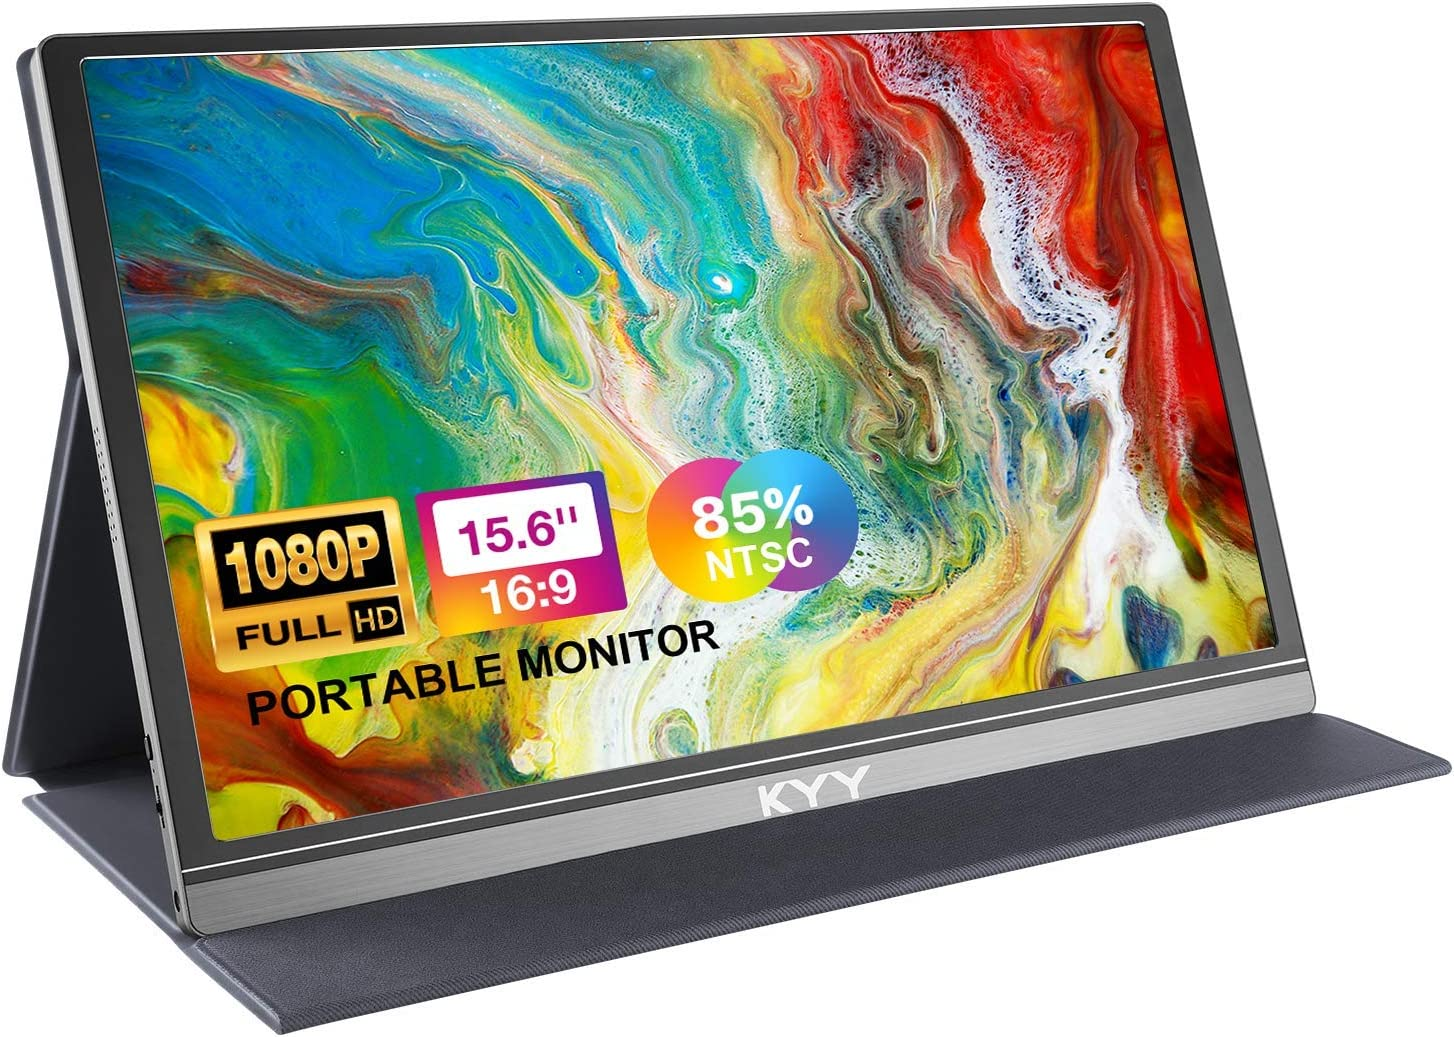 Portable Monitor for Laptop, 15.6'' 1080P FHD USB C Portable Laptop Monitor HDMI Gaming Monitor w/High Color Gamut Premium Smart Cover, Dual Speakers, External Monitor for Laptop PC MAC Phone PS4 Xbox